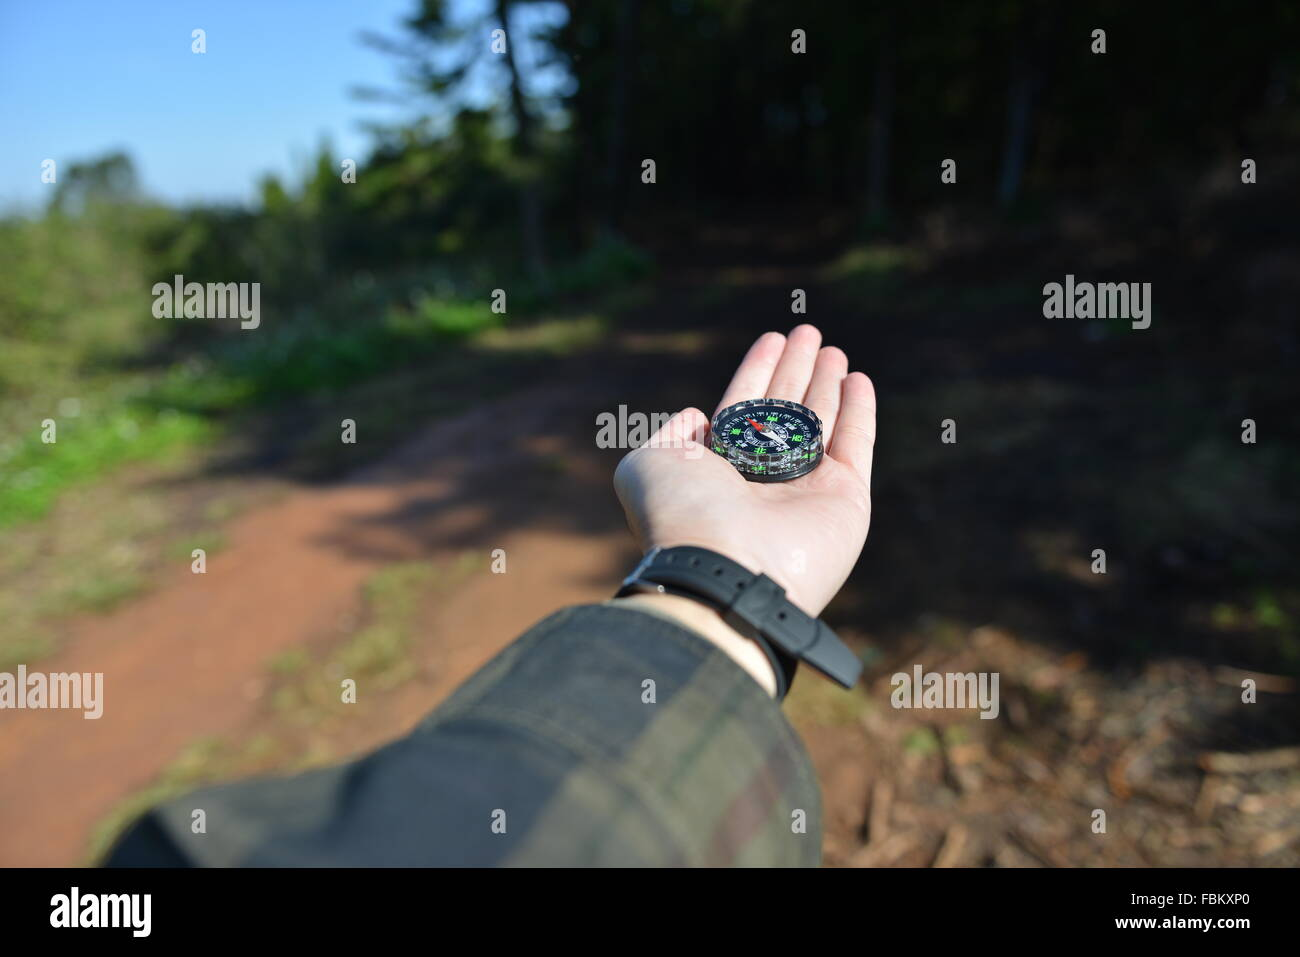 compass, directions, drive, driving, highways, lost, map, maps, navigate, navigating, roads, vacations backpacking, - Stock Image